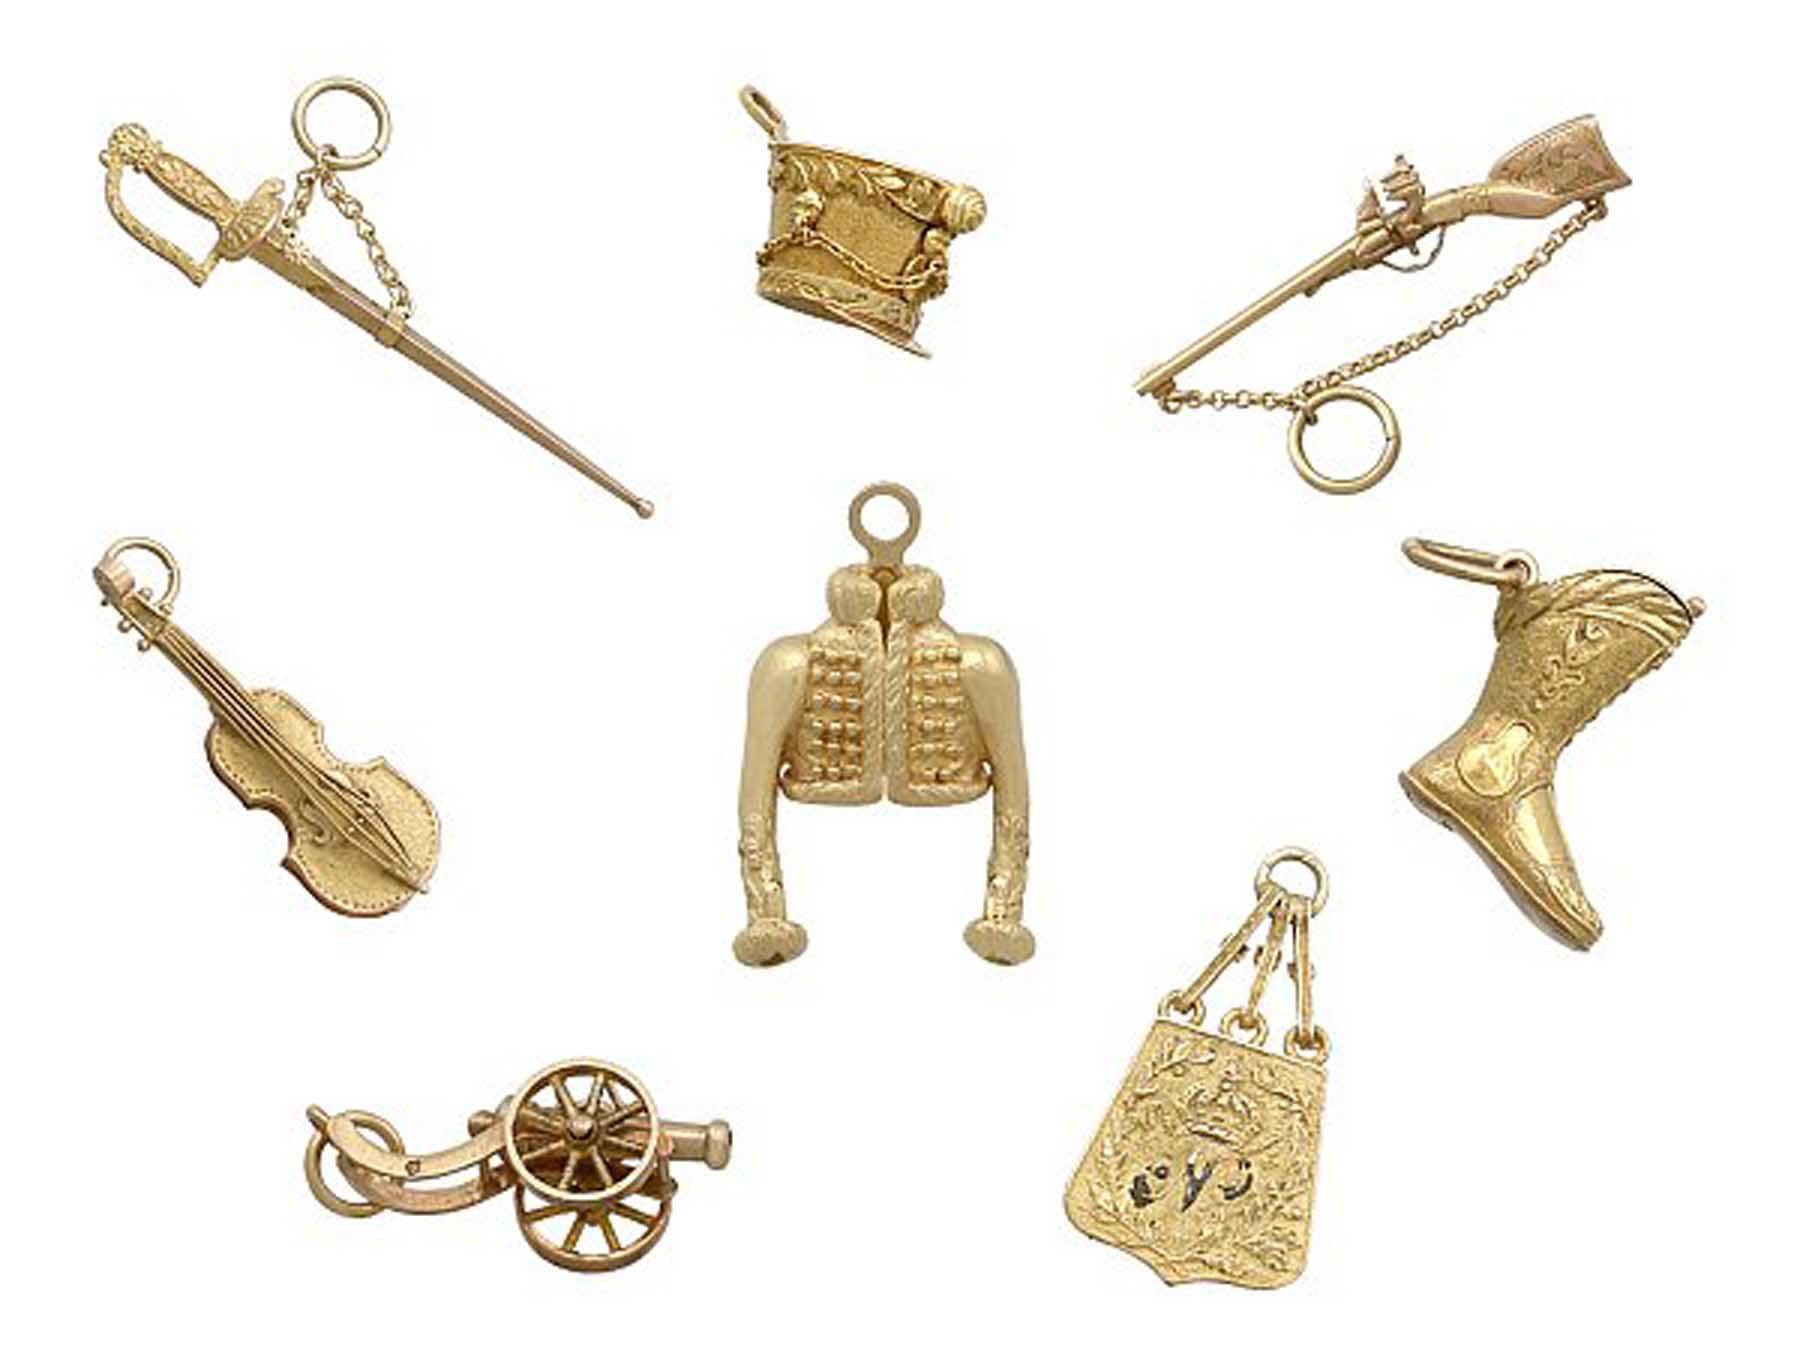 Antique Napoleonic Charms